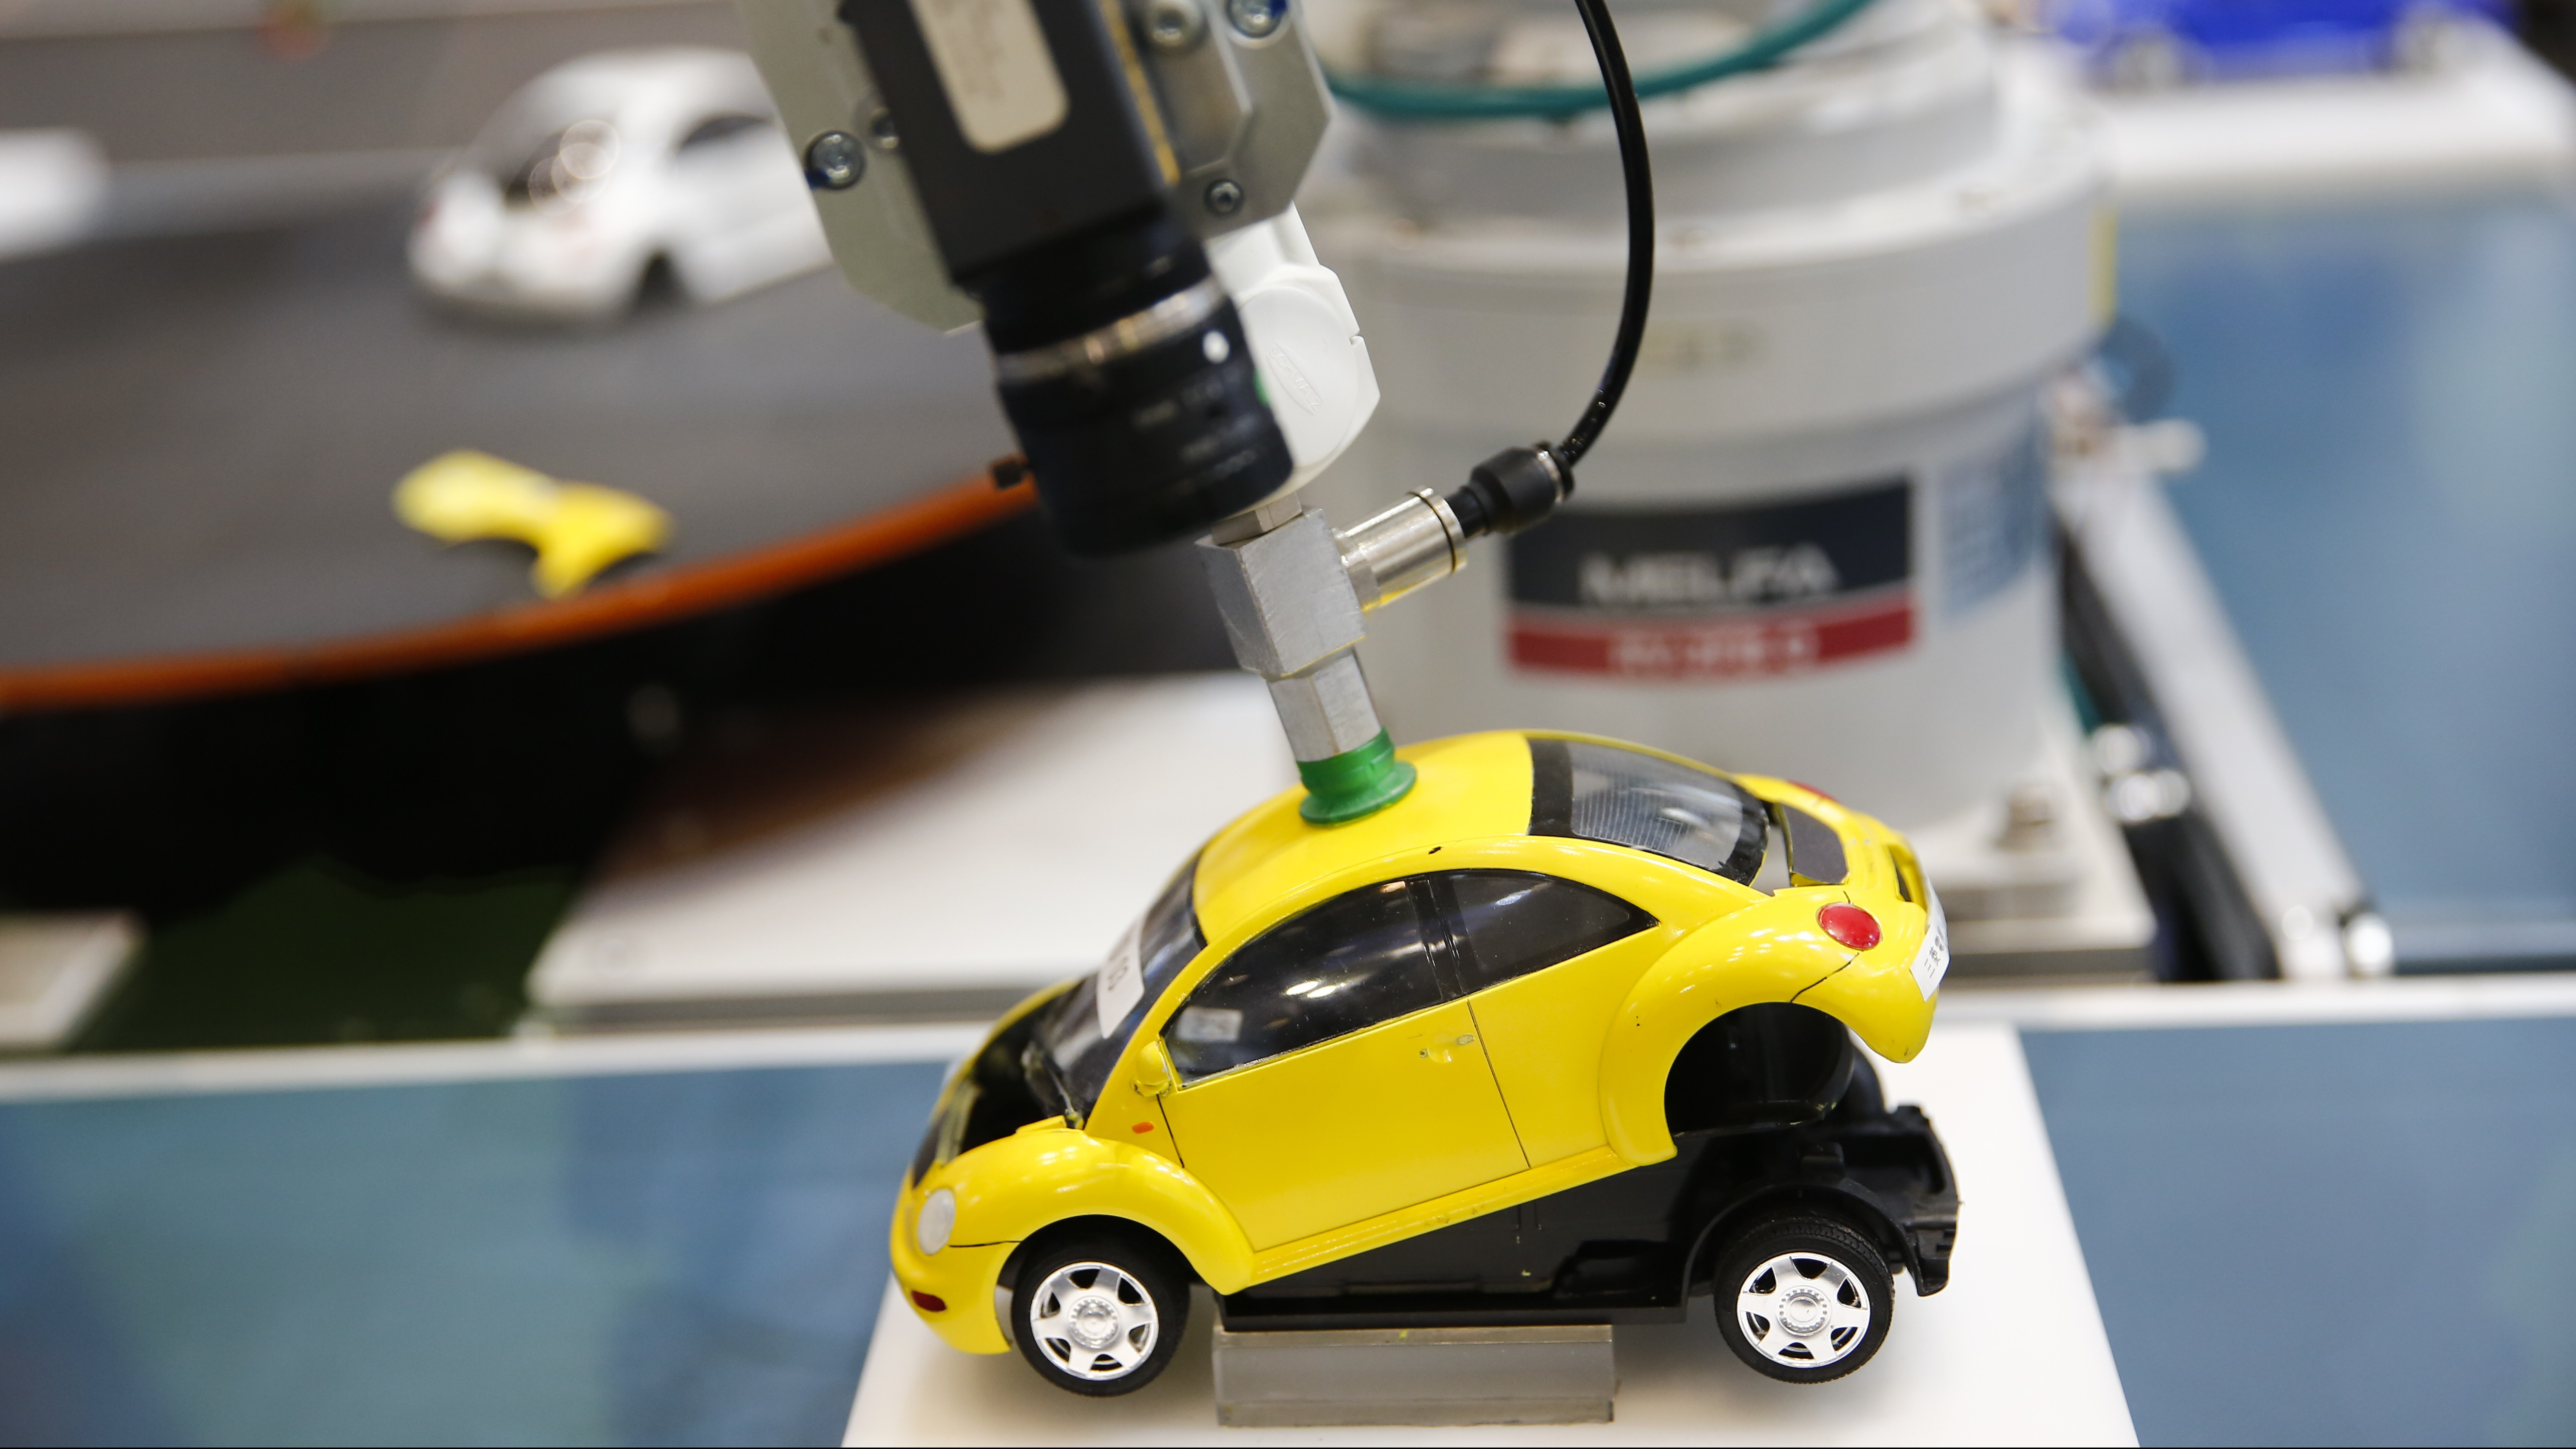 A robotic arm by Mitsubishi Electric assembles a toy car at the System Control Fair SCF 2015 in Tokyo